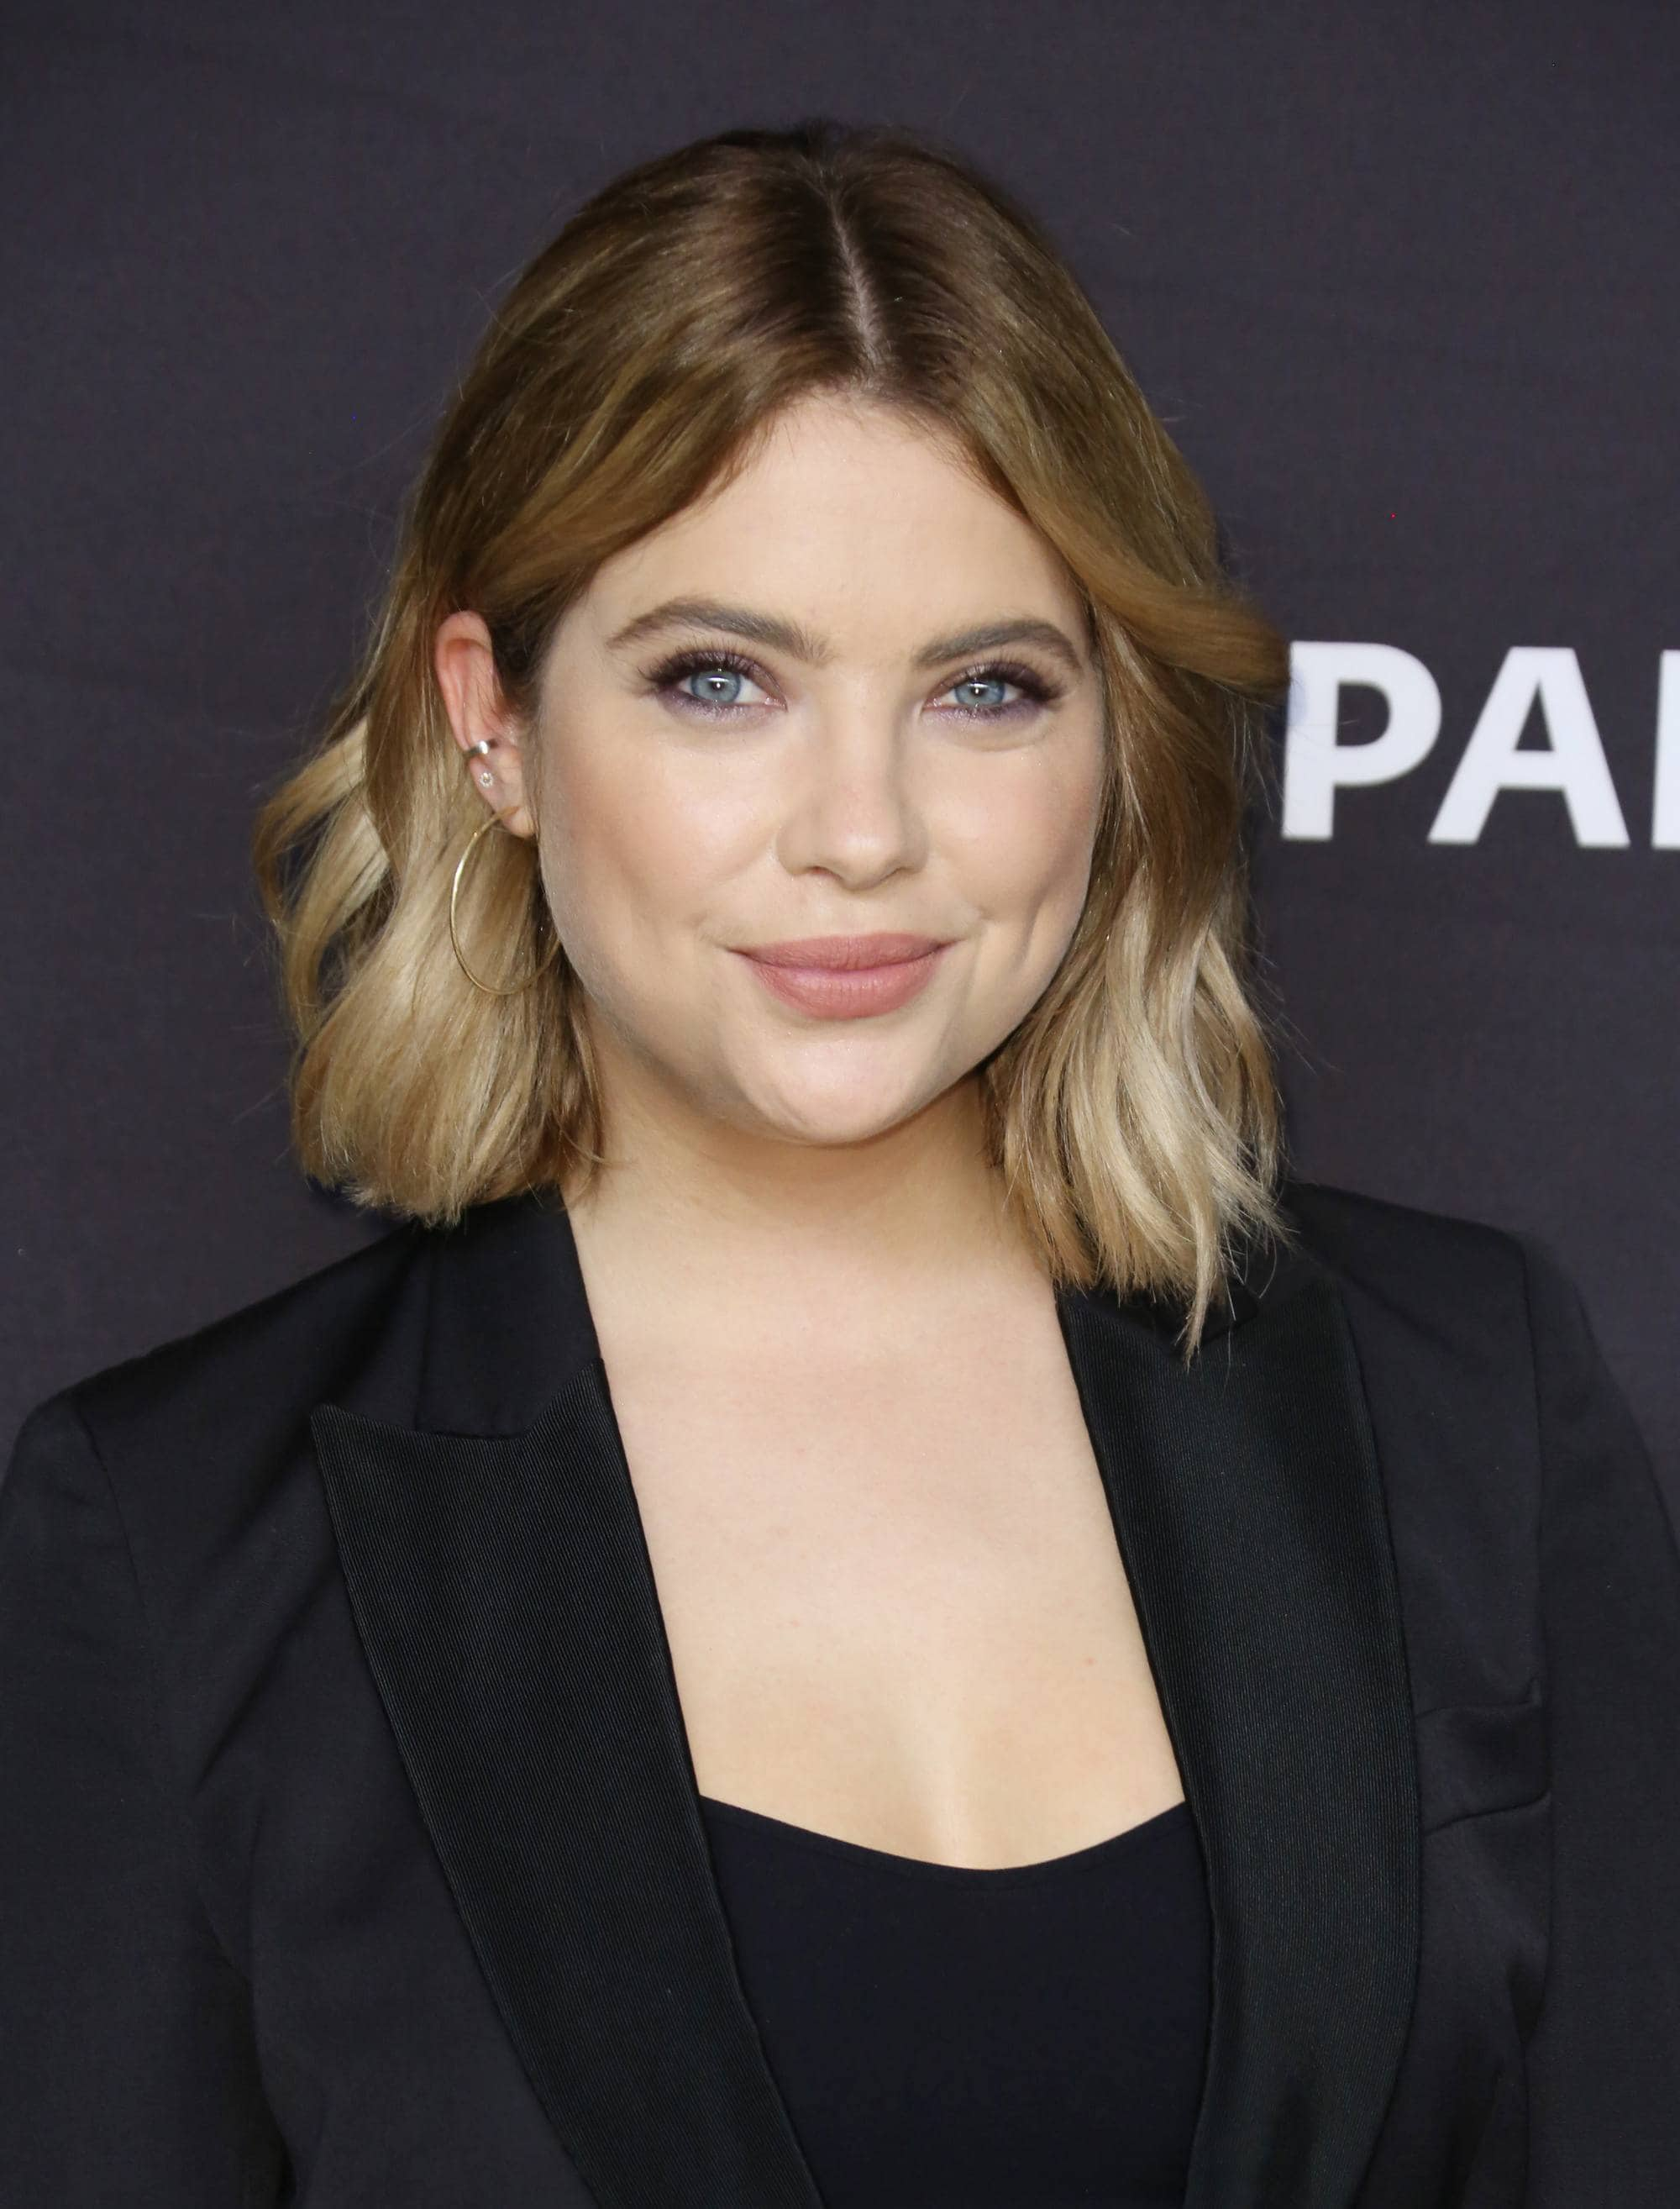 Dirty blonde hair - Ashley Benson lob hair with darker roots and light blonde ends